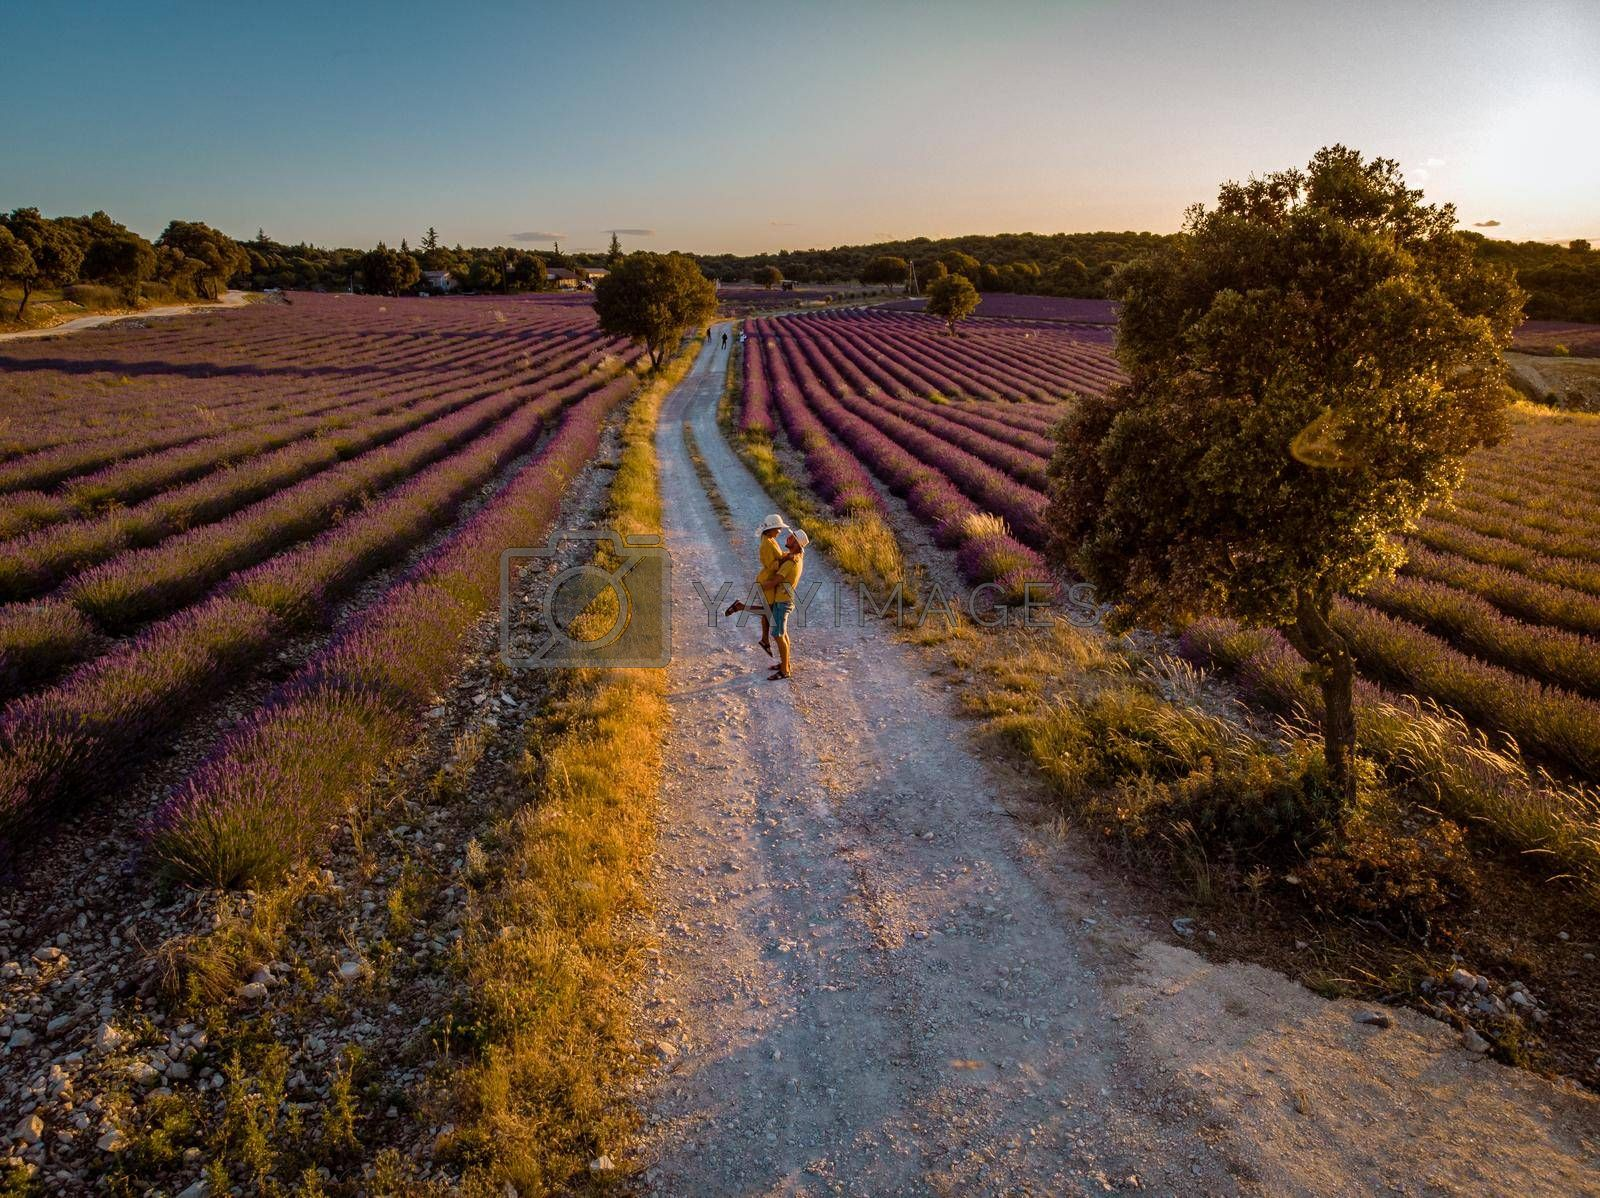 Lavender fields in Ardeche in southeast France. Drone aerial view